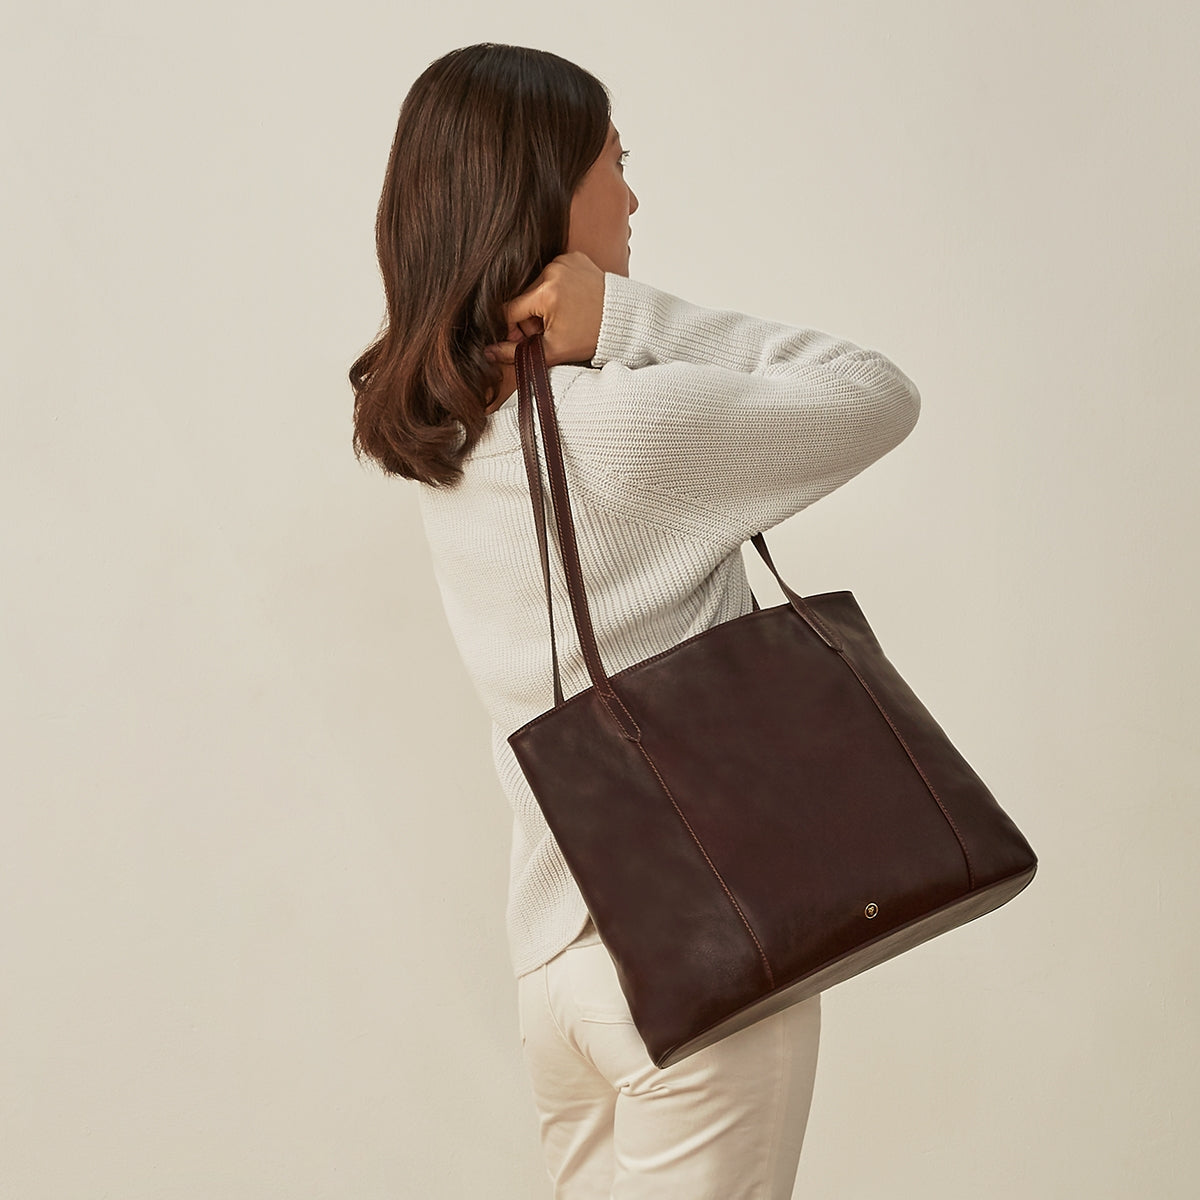 Image 8 of the 'Athenea' Dark Chocolate Veg-Tanned Leather Shopper